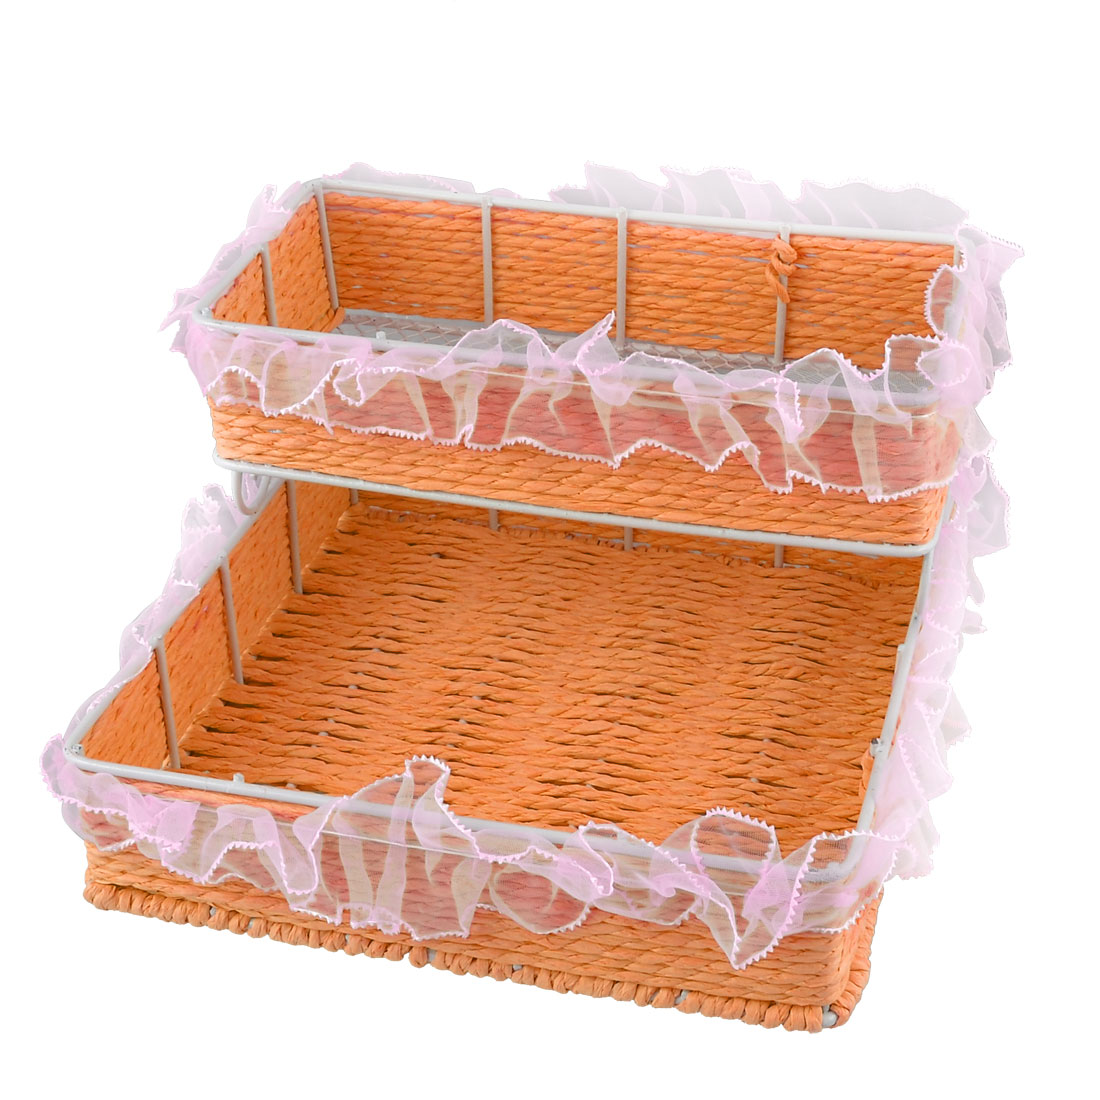 Metal Frame Two Layers Straw Weave Woven Storage Rack Bin Orange Pink